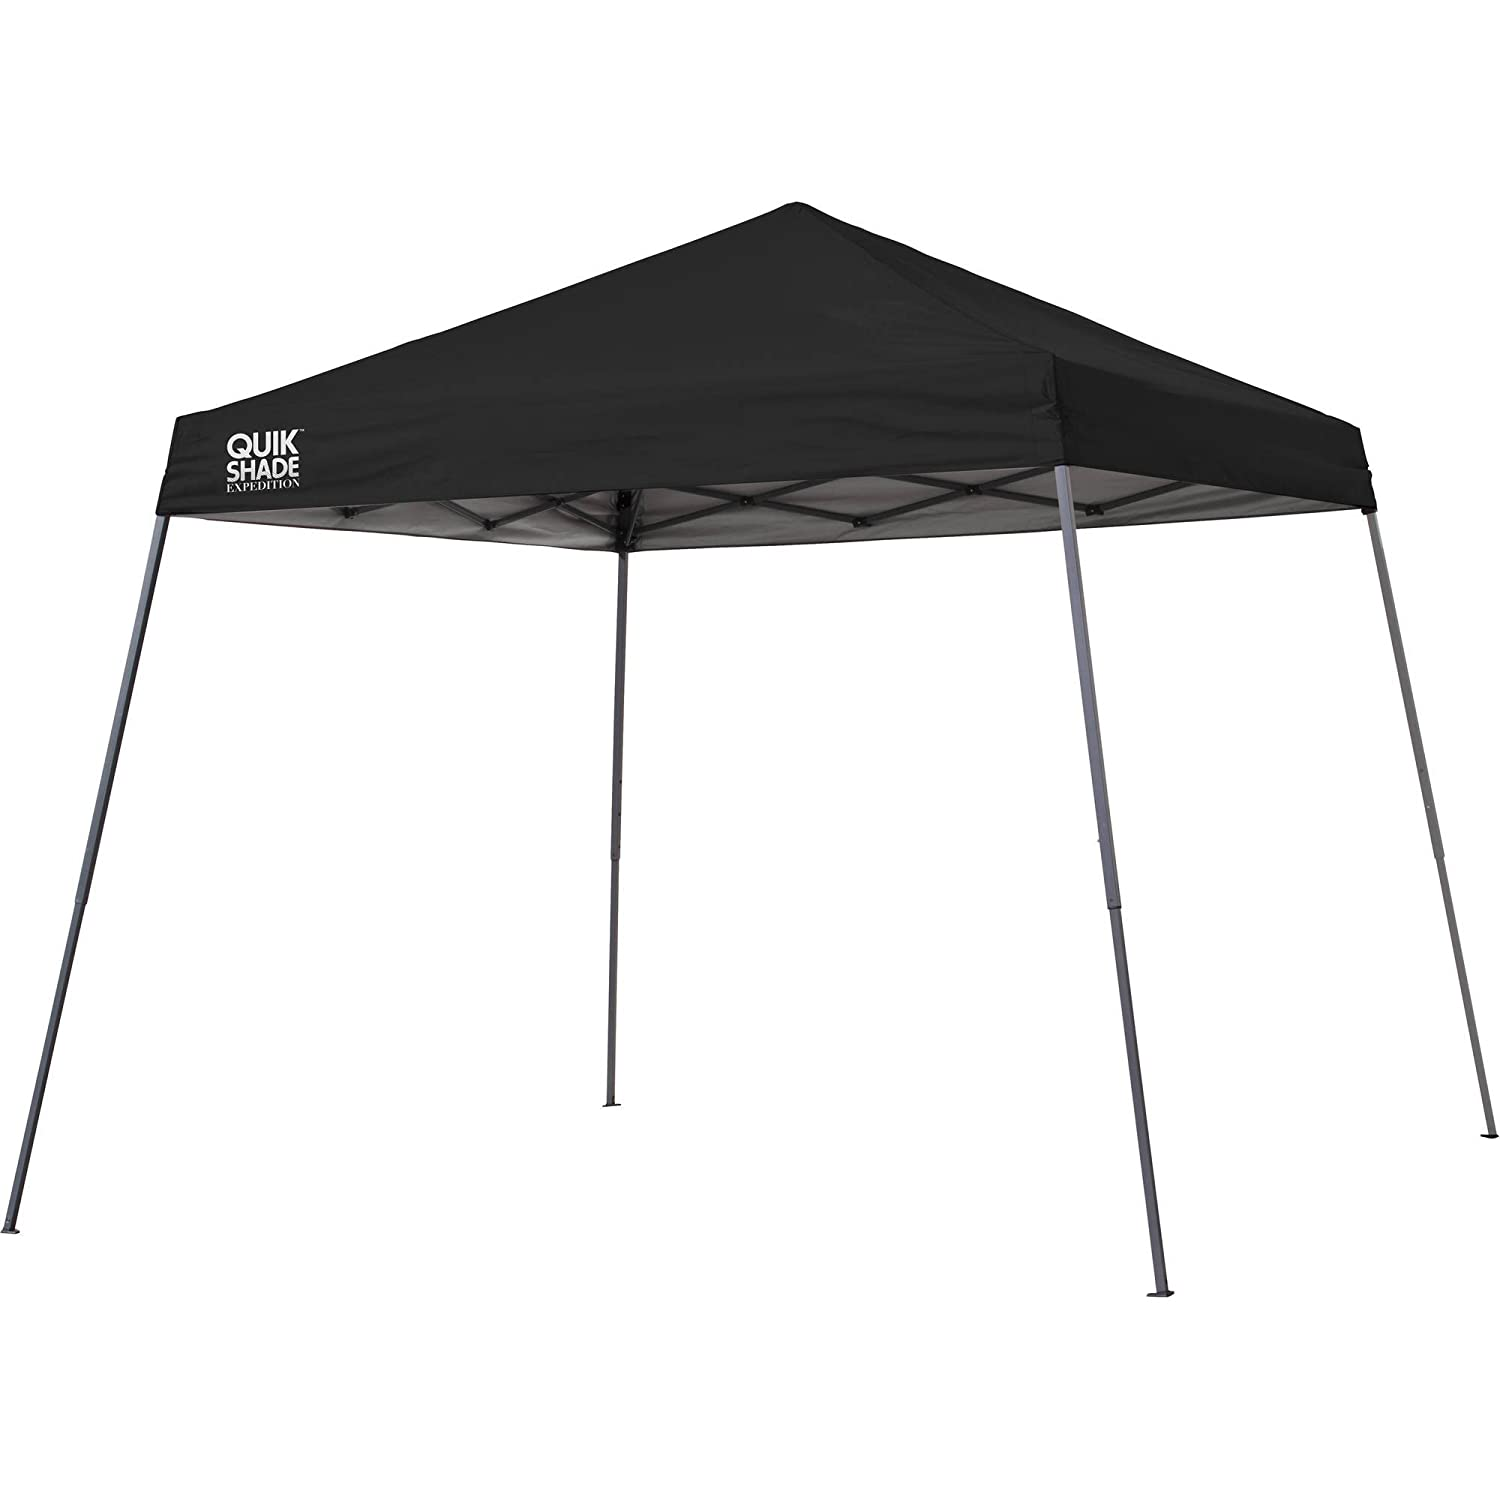 Quik Shade Expedition EX64 10 x 10 Slant Leg Instant Canopy  sc 1 st  Amazon.com : quik shade backpack canopy - memphite.com